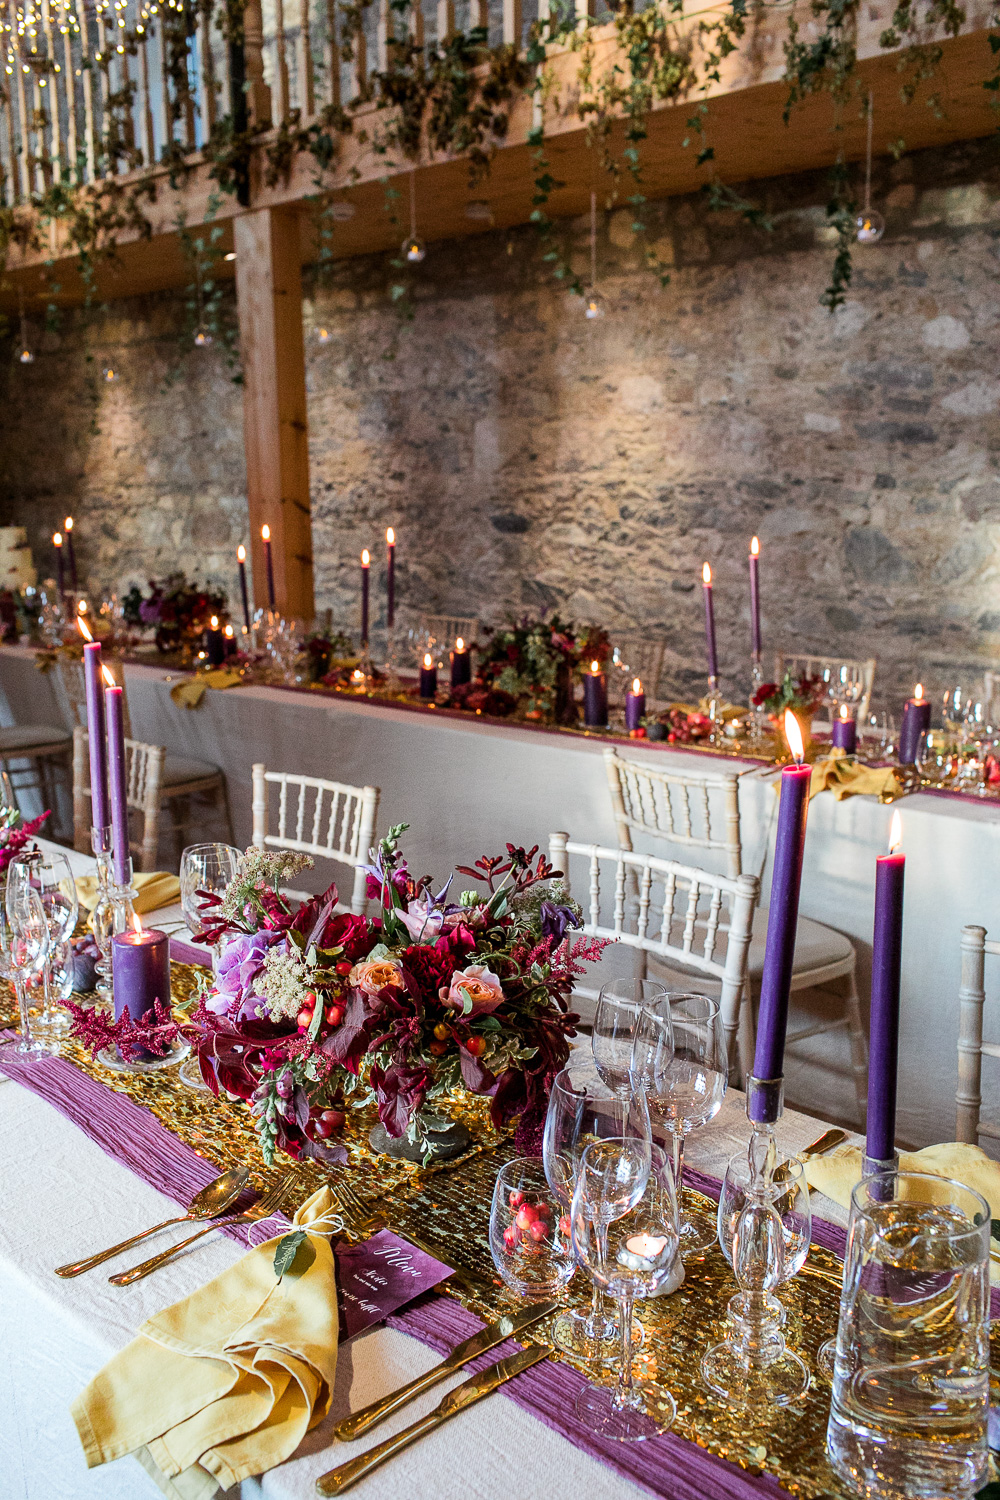 purple candles for the wedding table decorations with berries and purple table runner